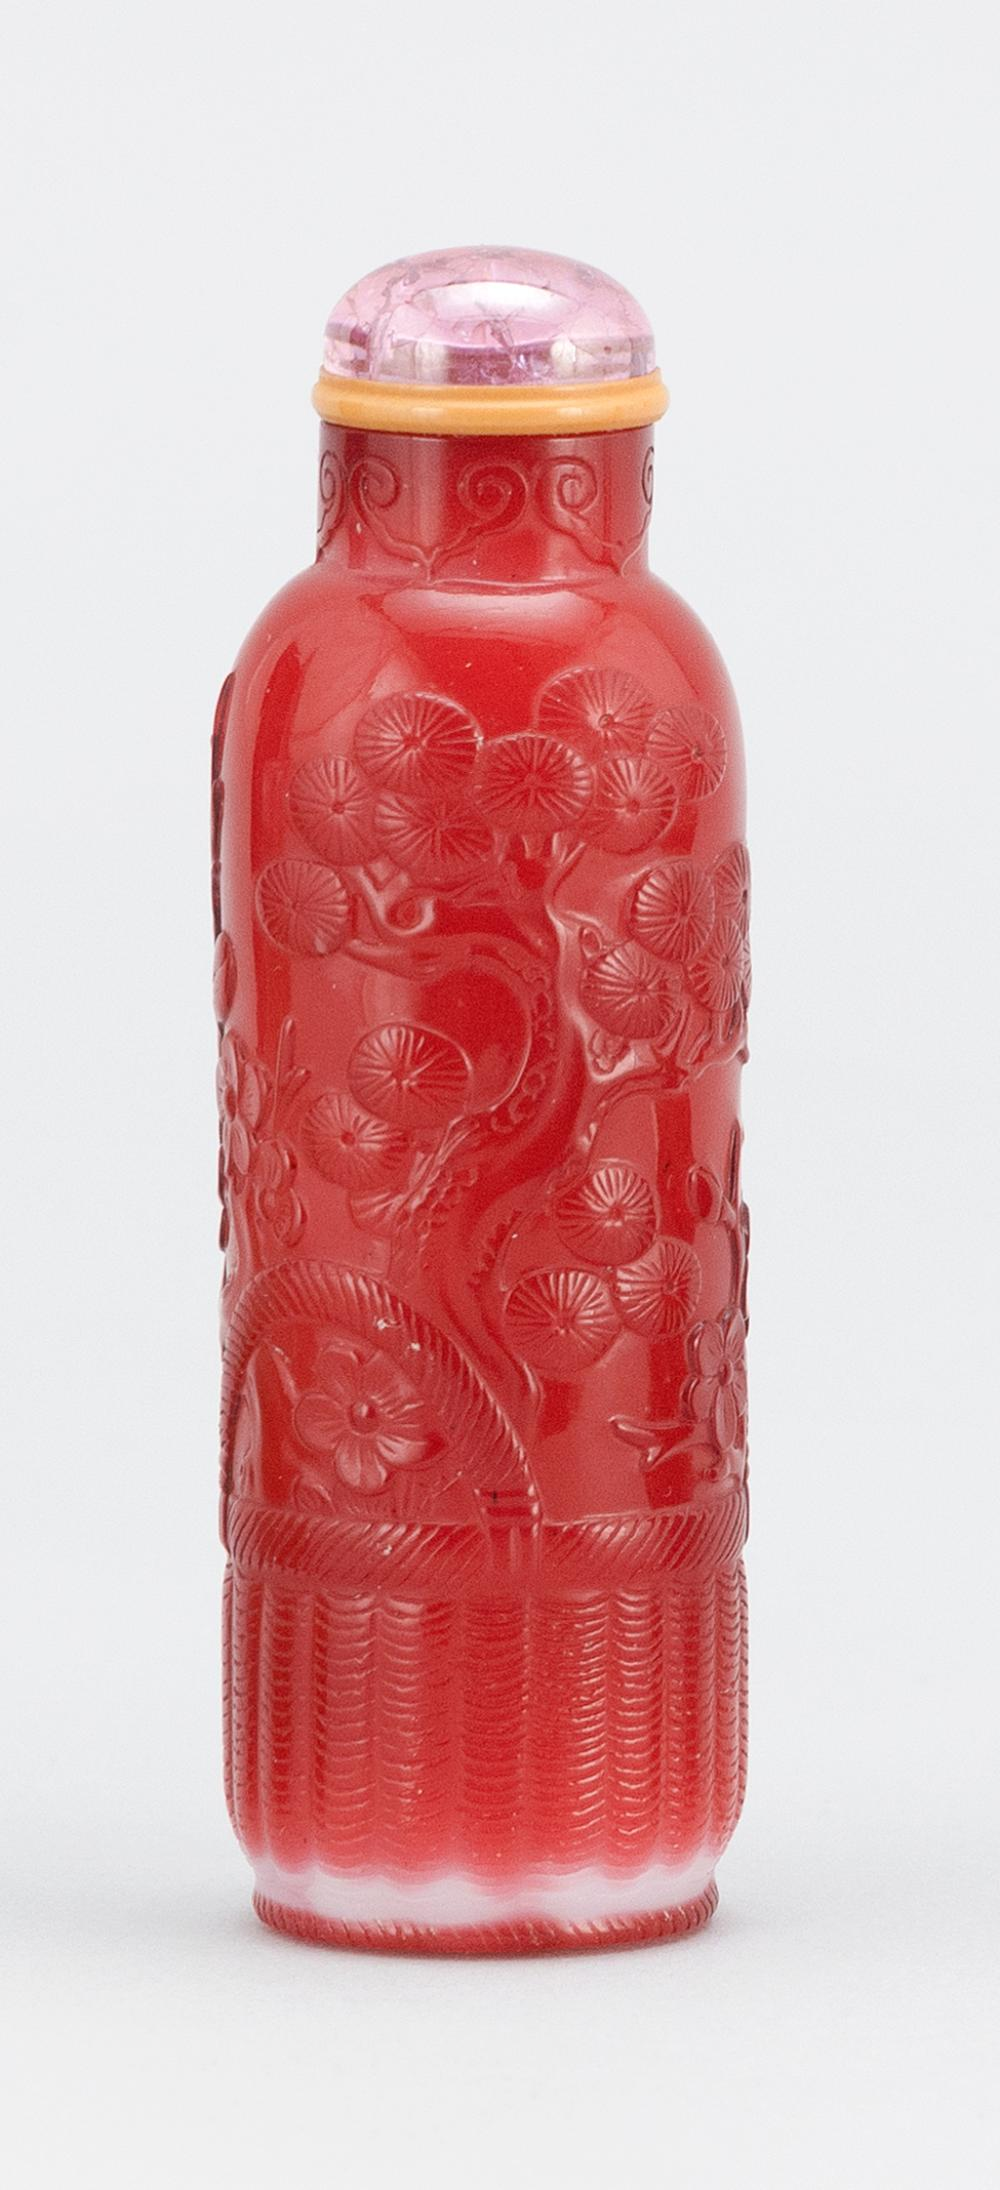 SUPERB CHINESE RED OVERLAY ON MILK WHITE GLASS SNUFF BOTTLE Cylindrical, with delicate carving of the Three Friends (pine, prunus an...